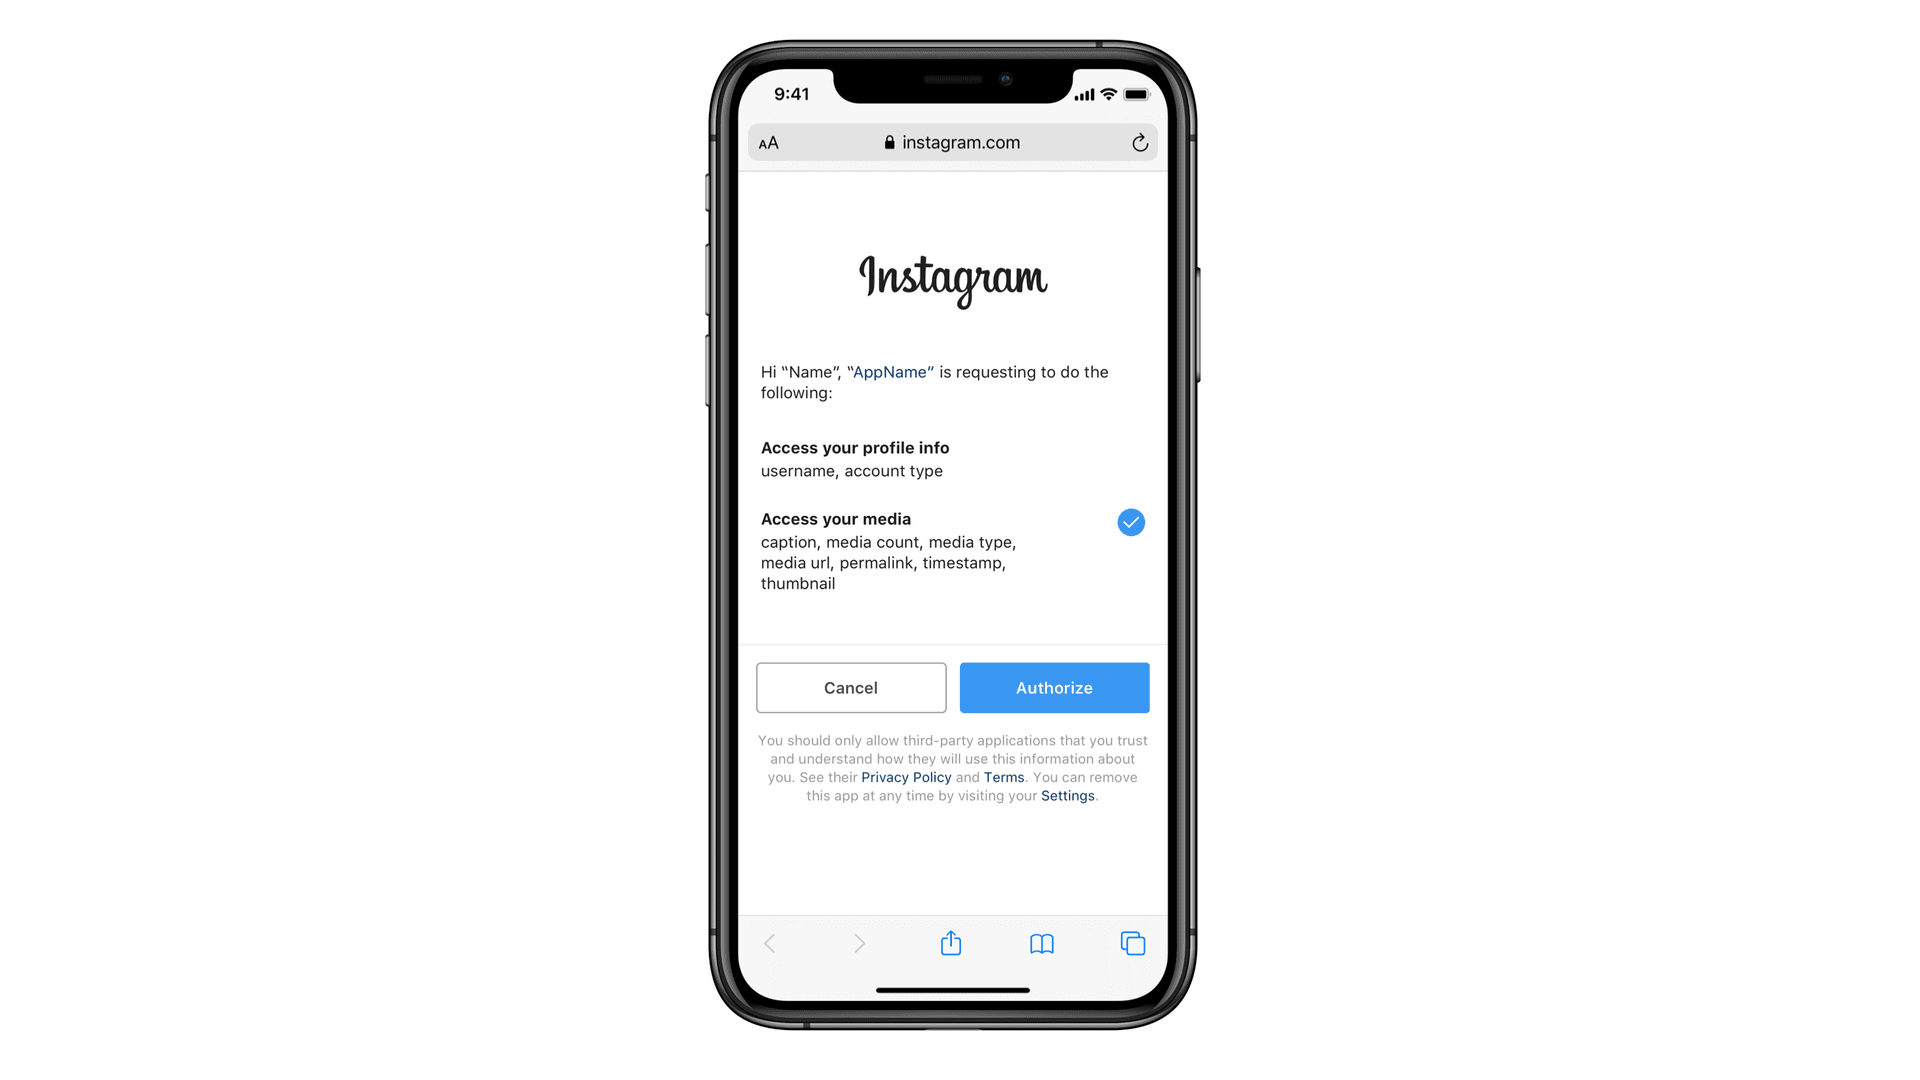 Instagram's new security feature gives you more control over third-party data access